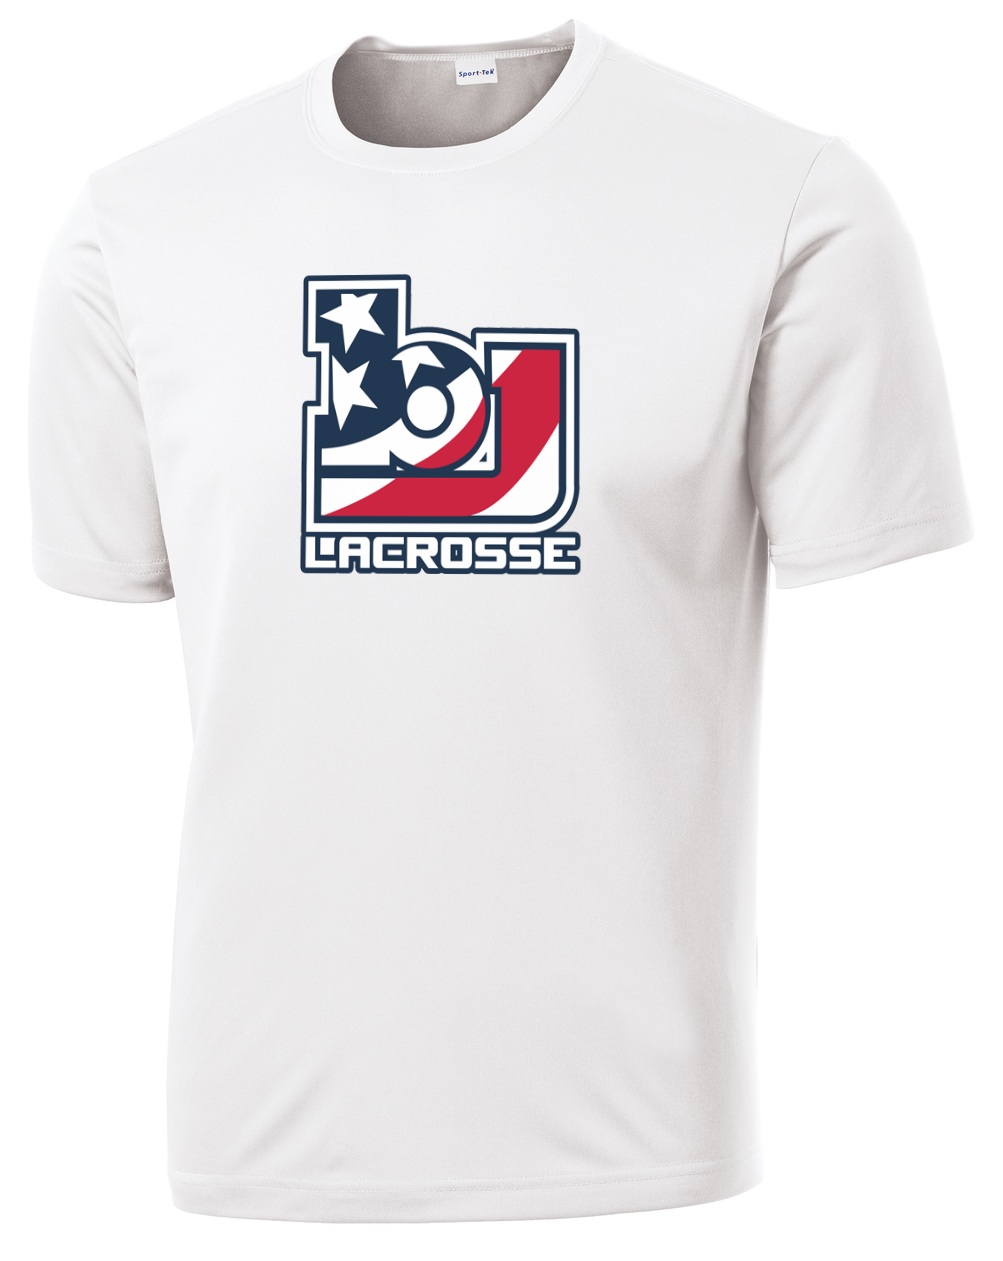 Bob Jones Lacrosse White T-Shirt